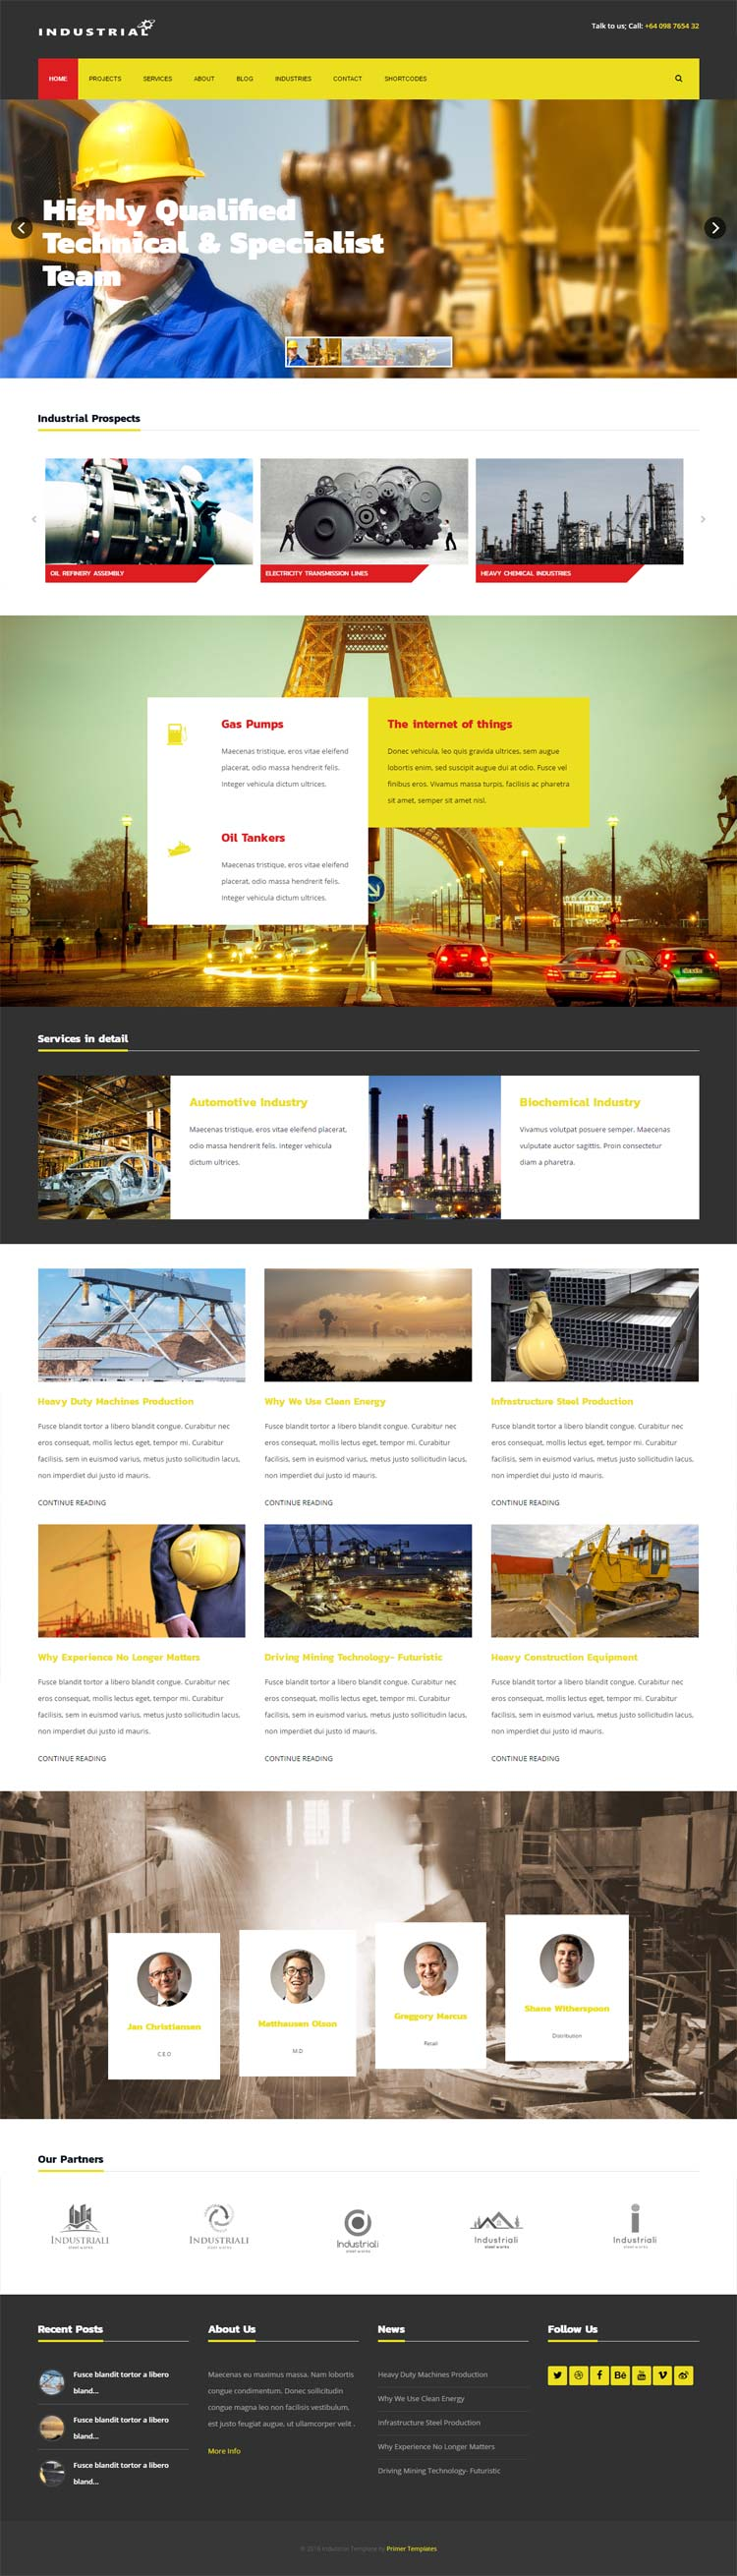 Industrial Joomla! template